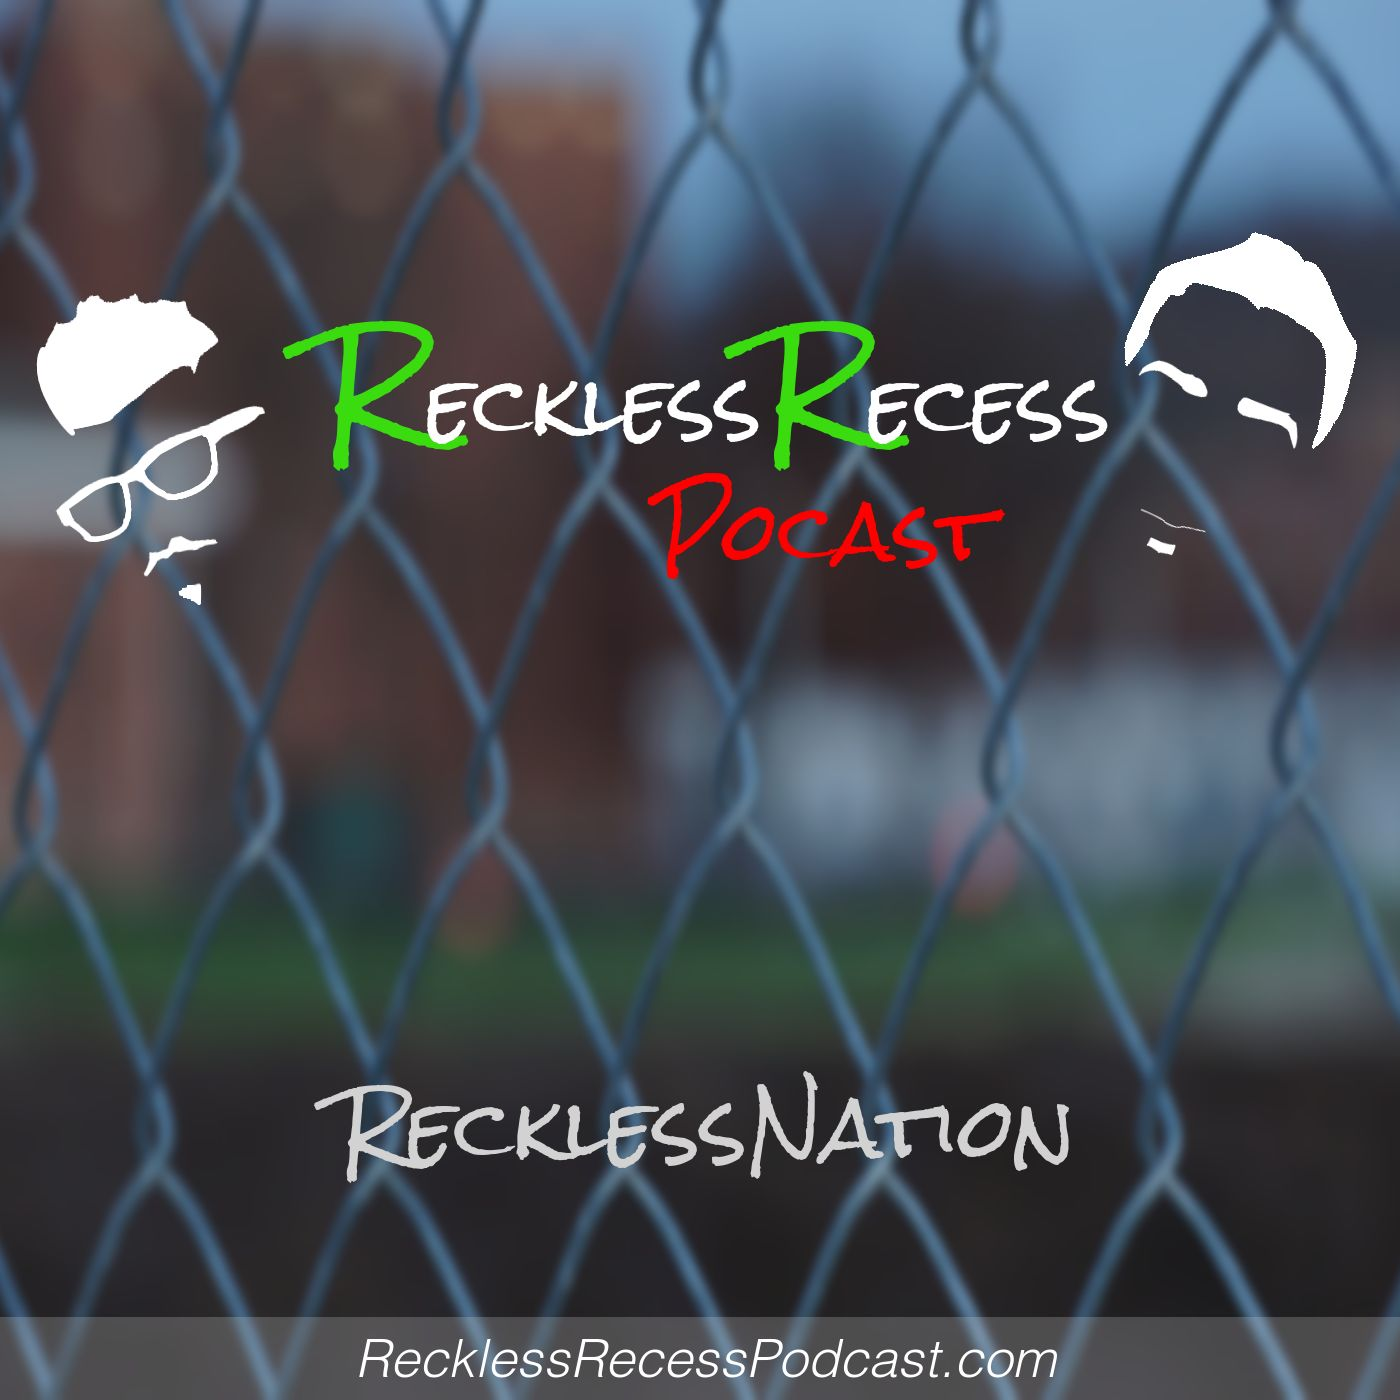 Reckless Recess Podcast